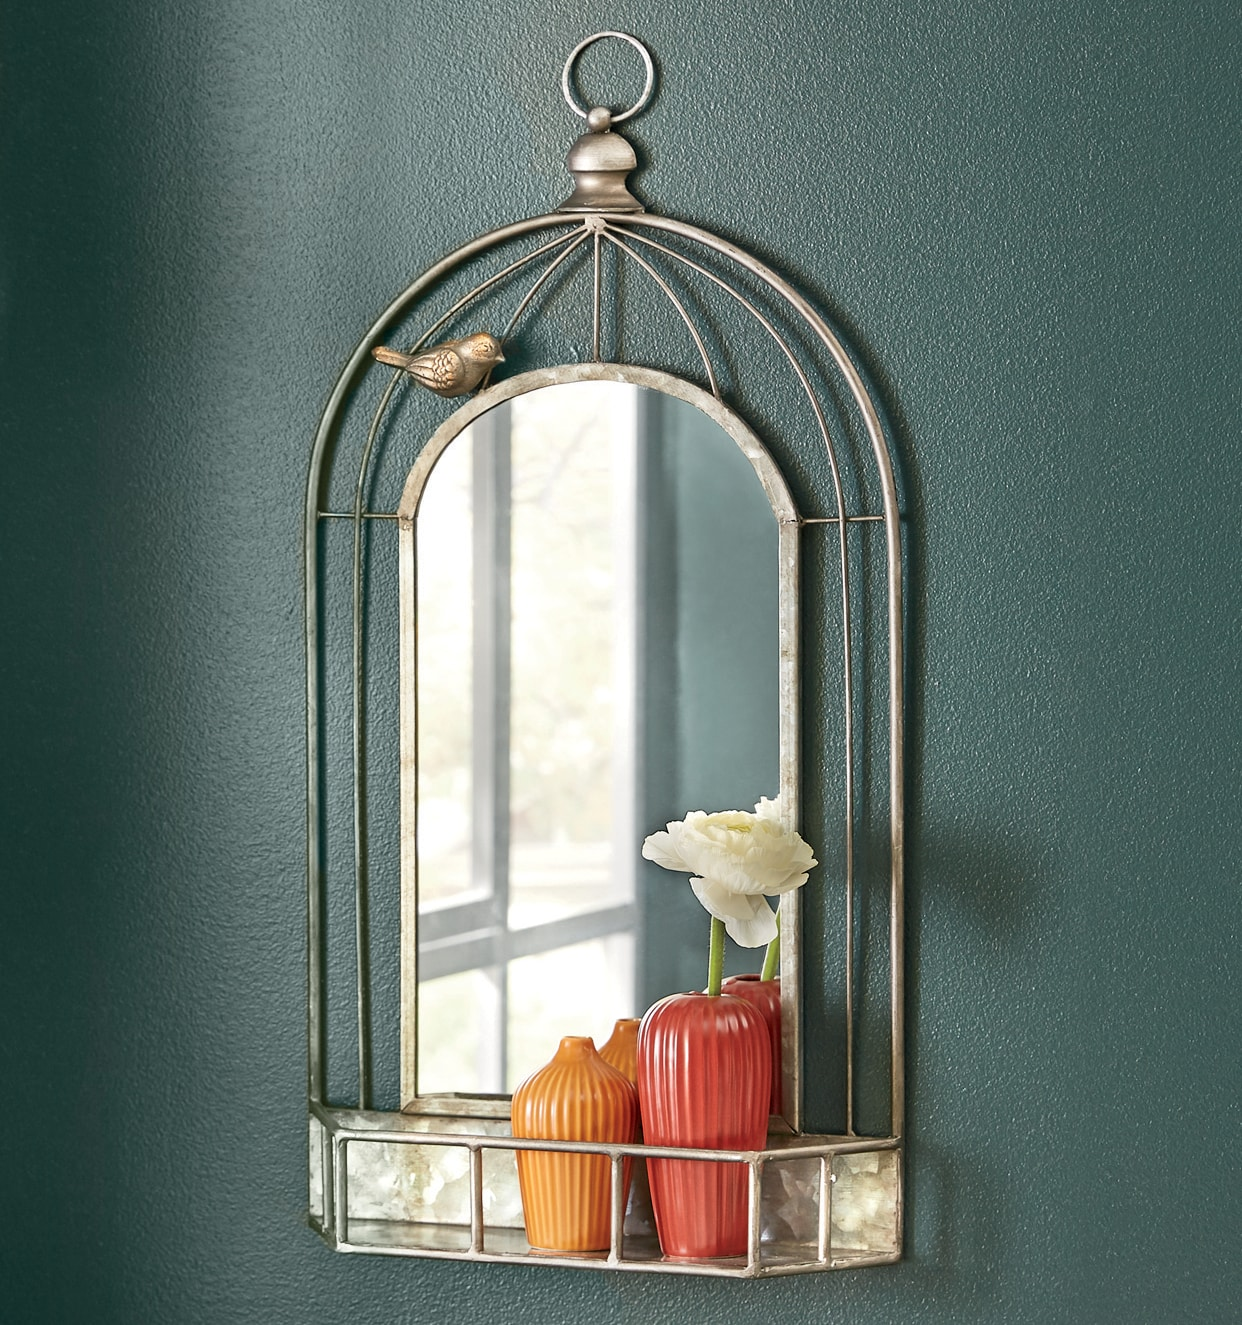 Mirrors   Wall  D    cor  Sets   Country Door Metal Birdcage Wall Mirror